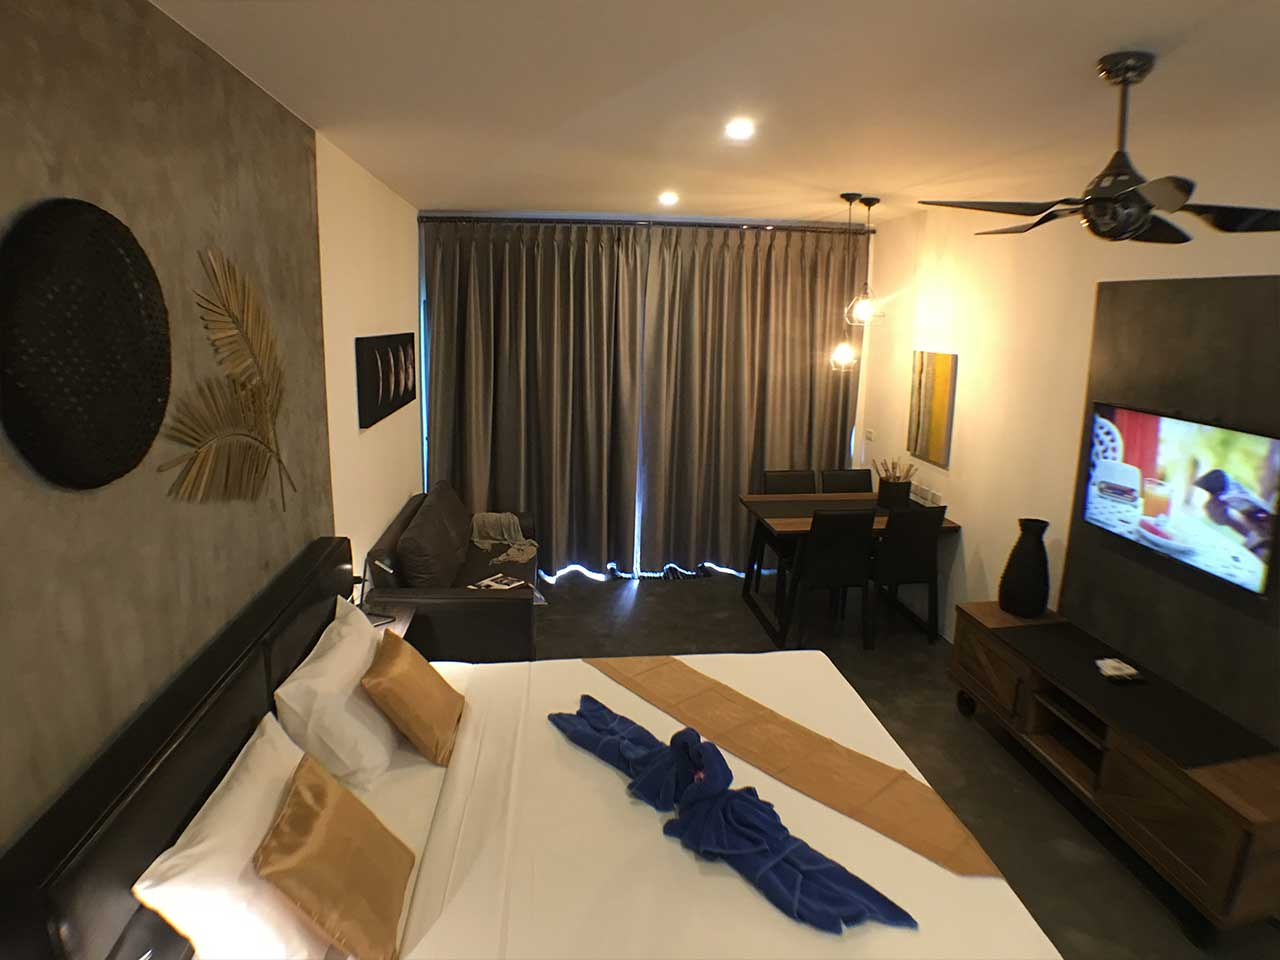 maphrao-resort-kamala-beach-phuket-rooms-interior-STUDIO-23-APARTMENT-07